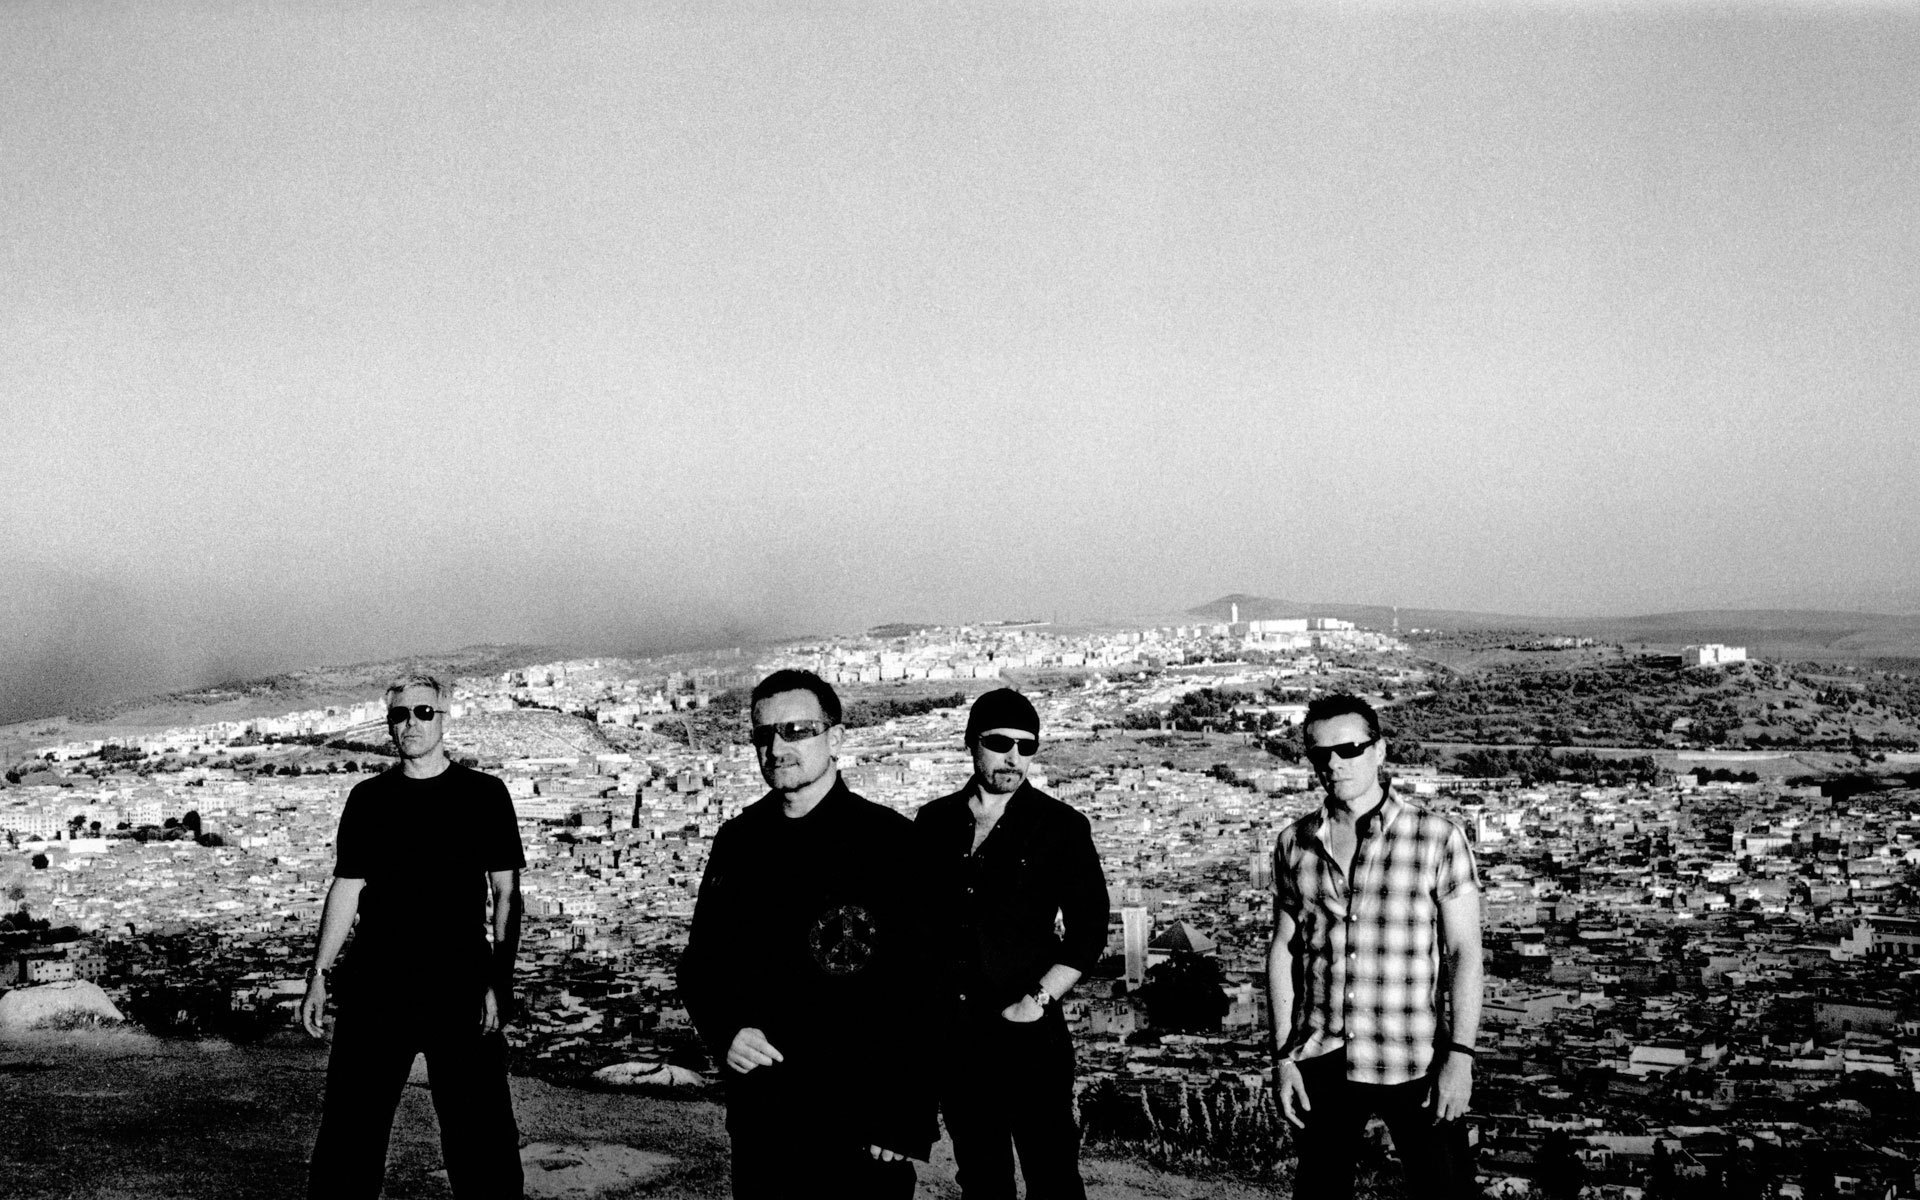 Wallpaper iphone u2 - U2 Wallpapers